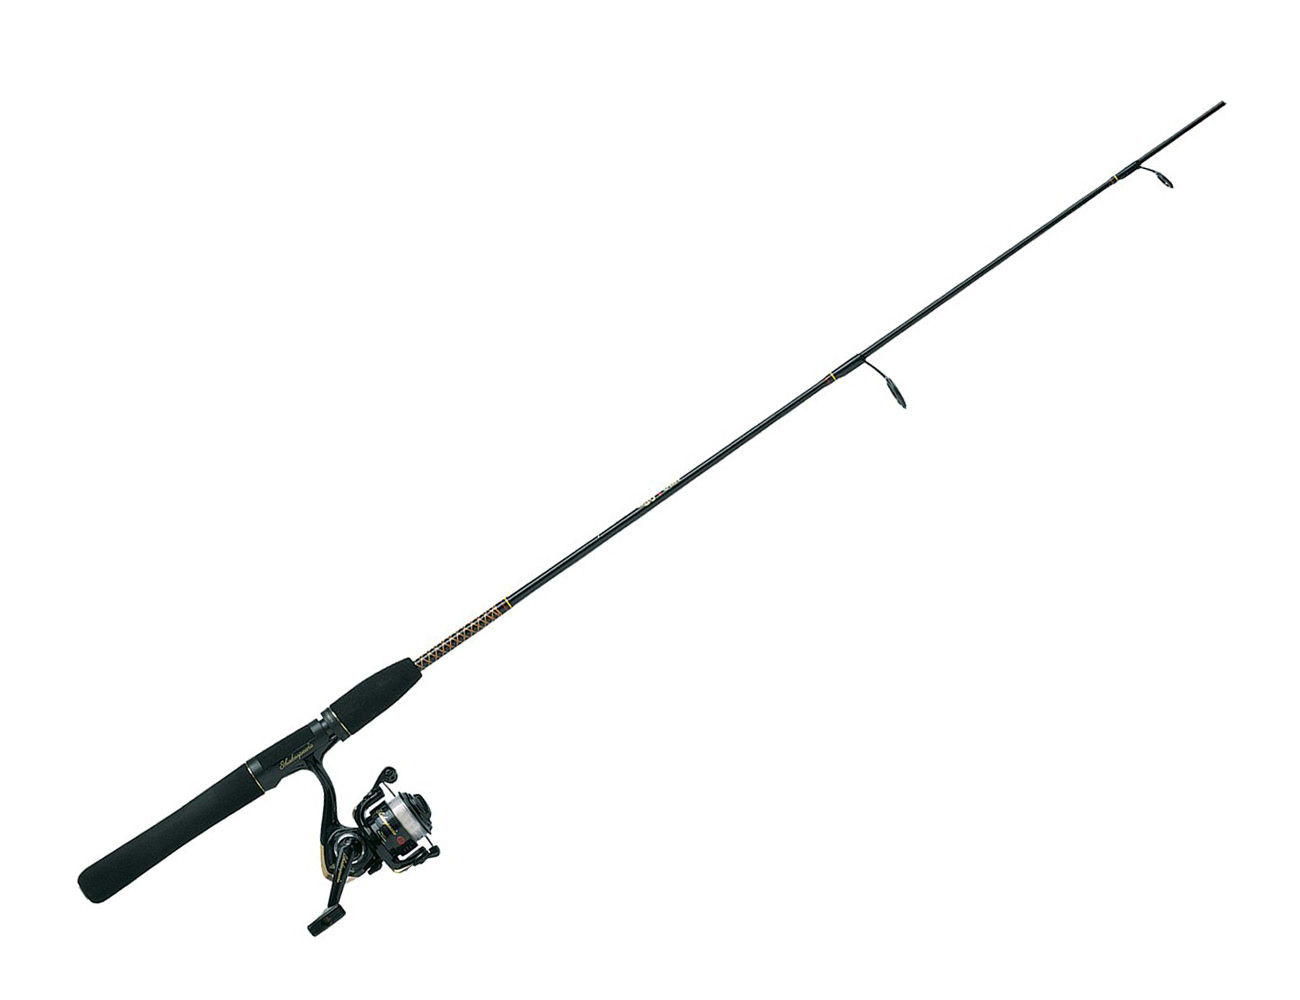 Download Free Fishing Pole Cliparts Download Free Fishing Pole Cliparts Png Images Free Cliparts On Clipart Library